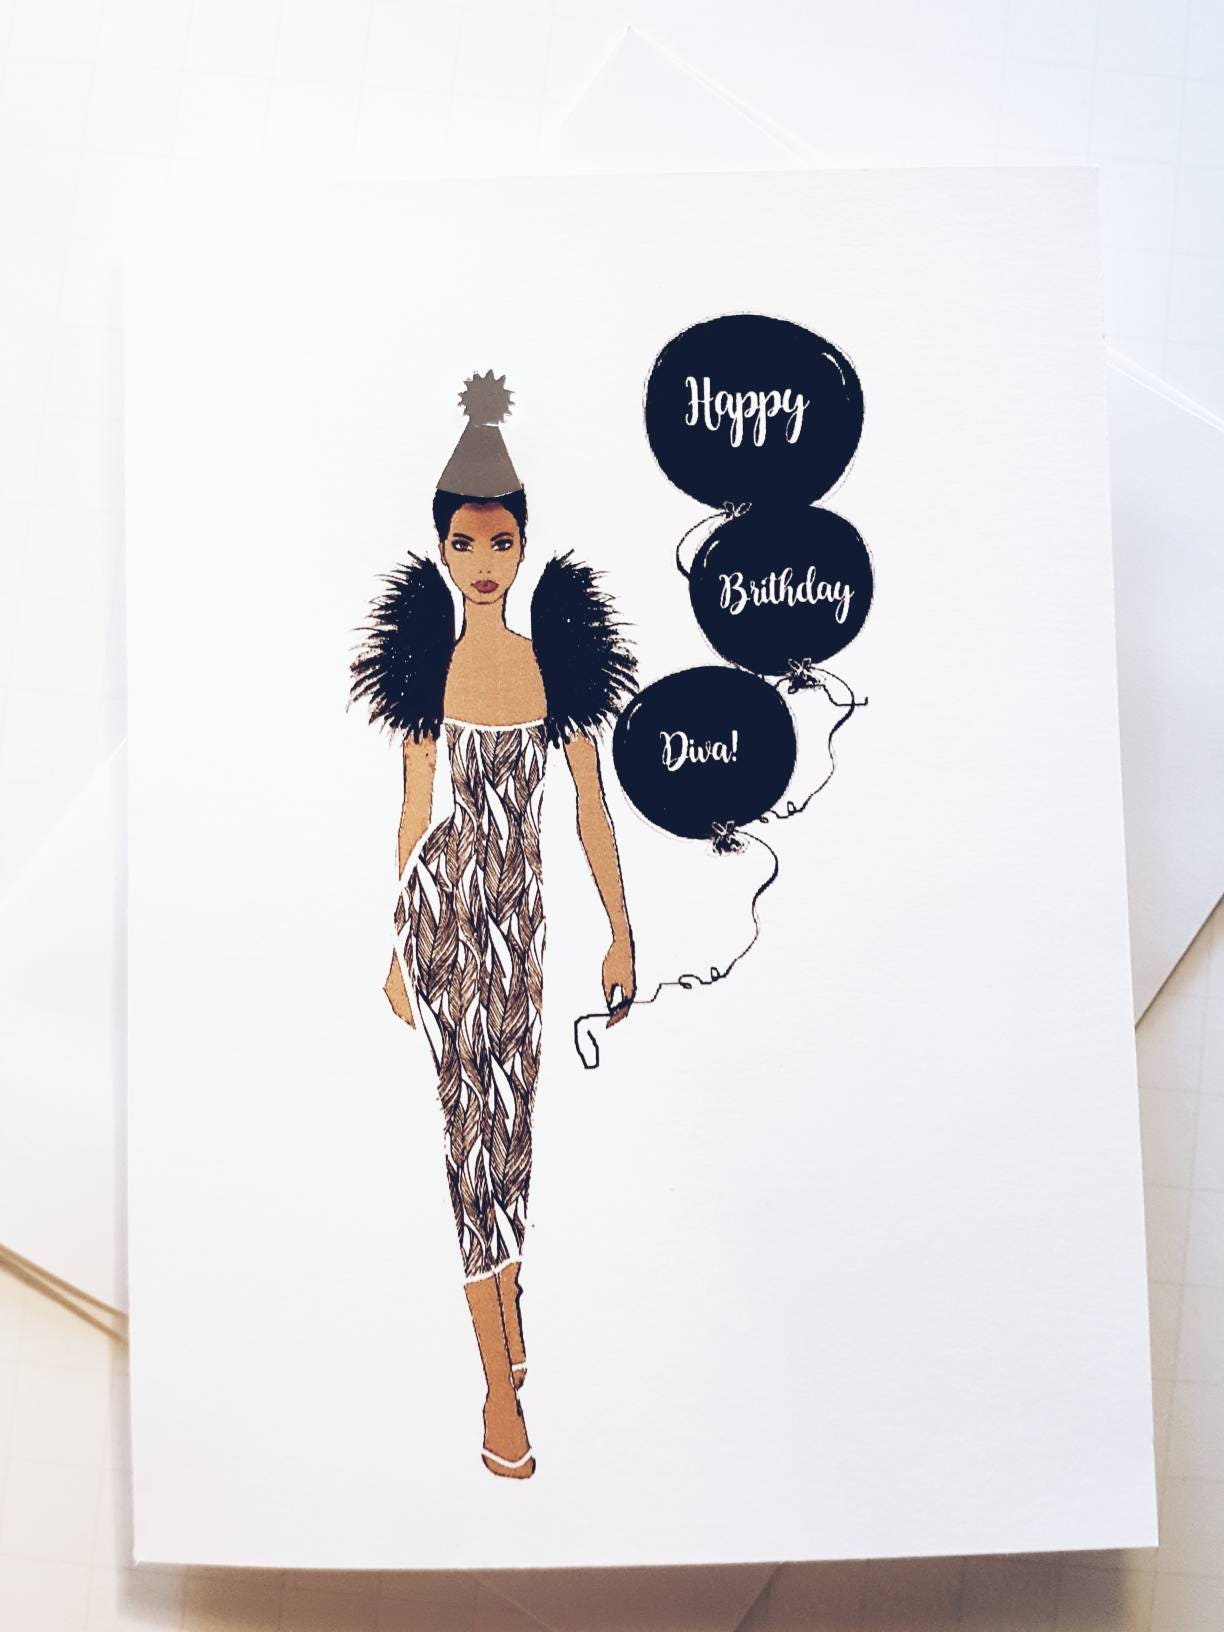 Birthday Card Diva Card Fashion Illustration Card